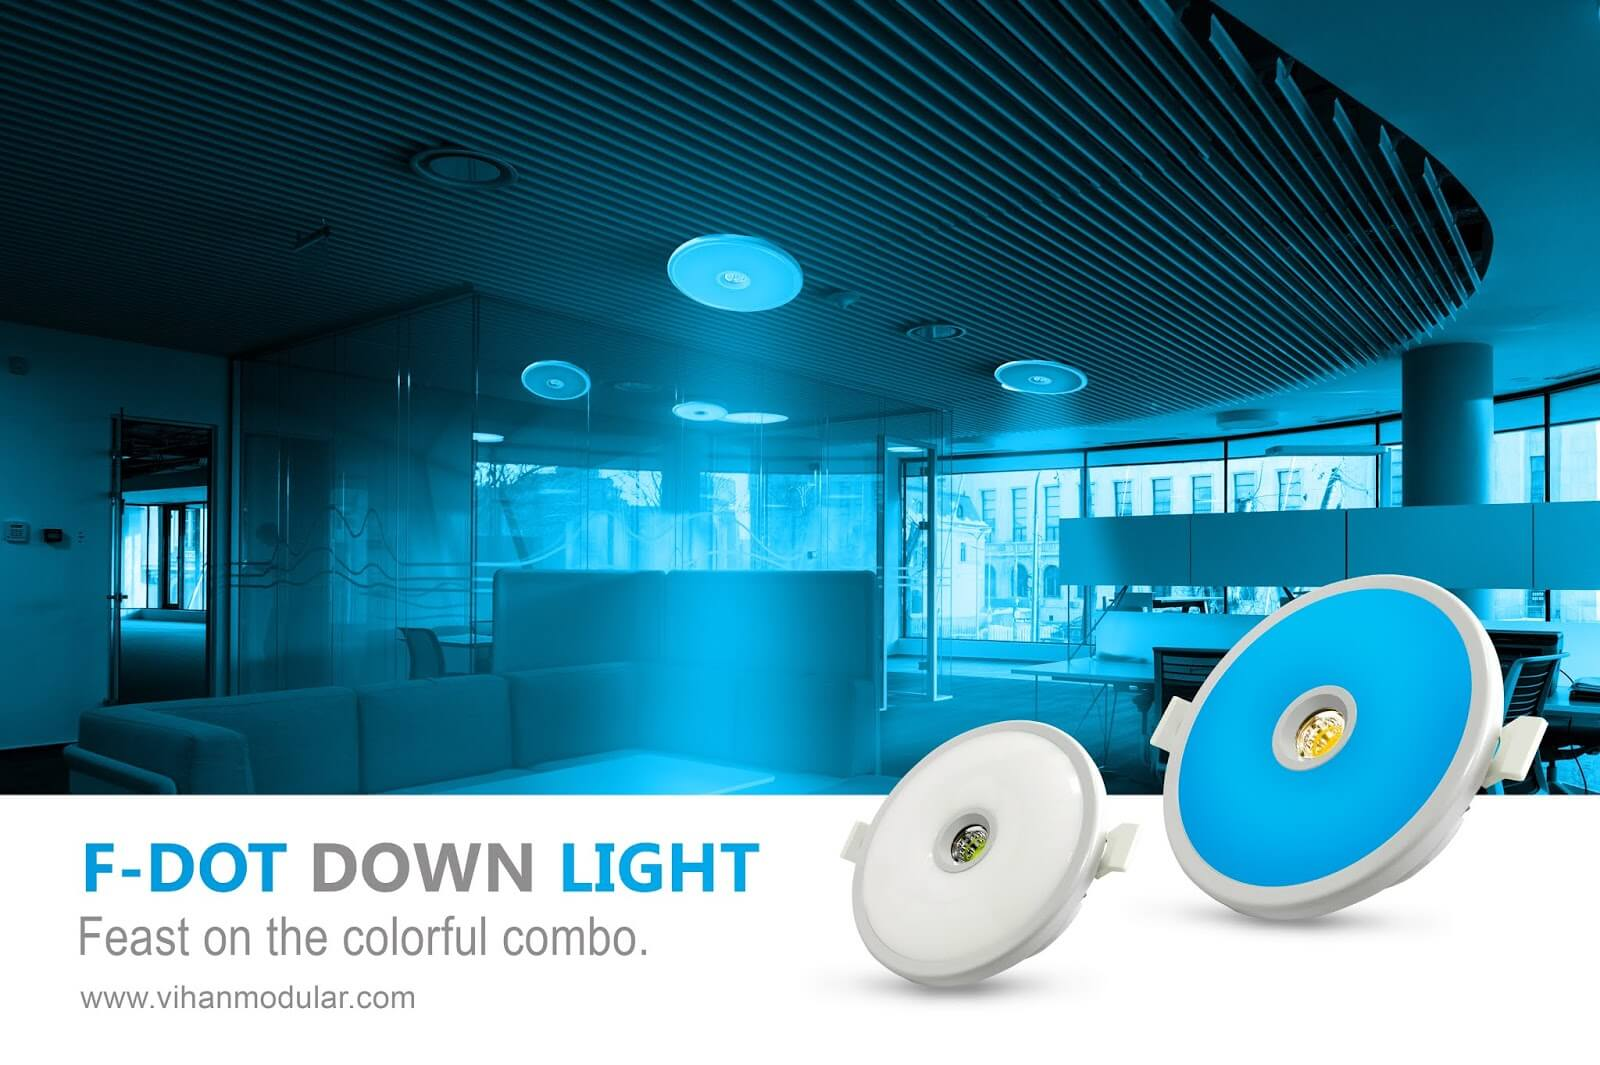 Dual Color Emission Lighting